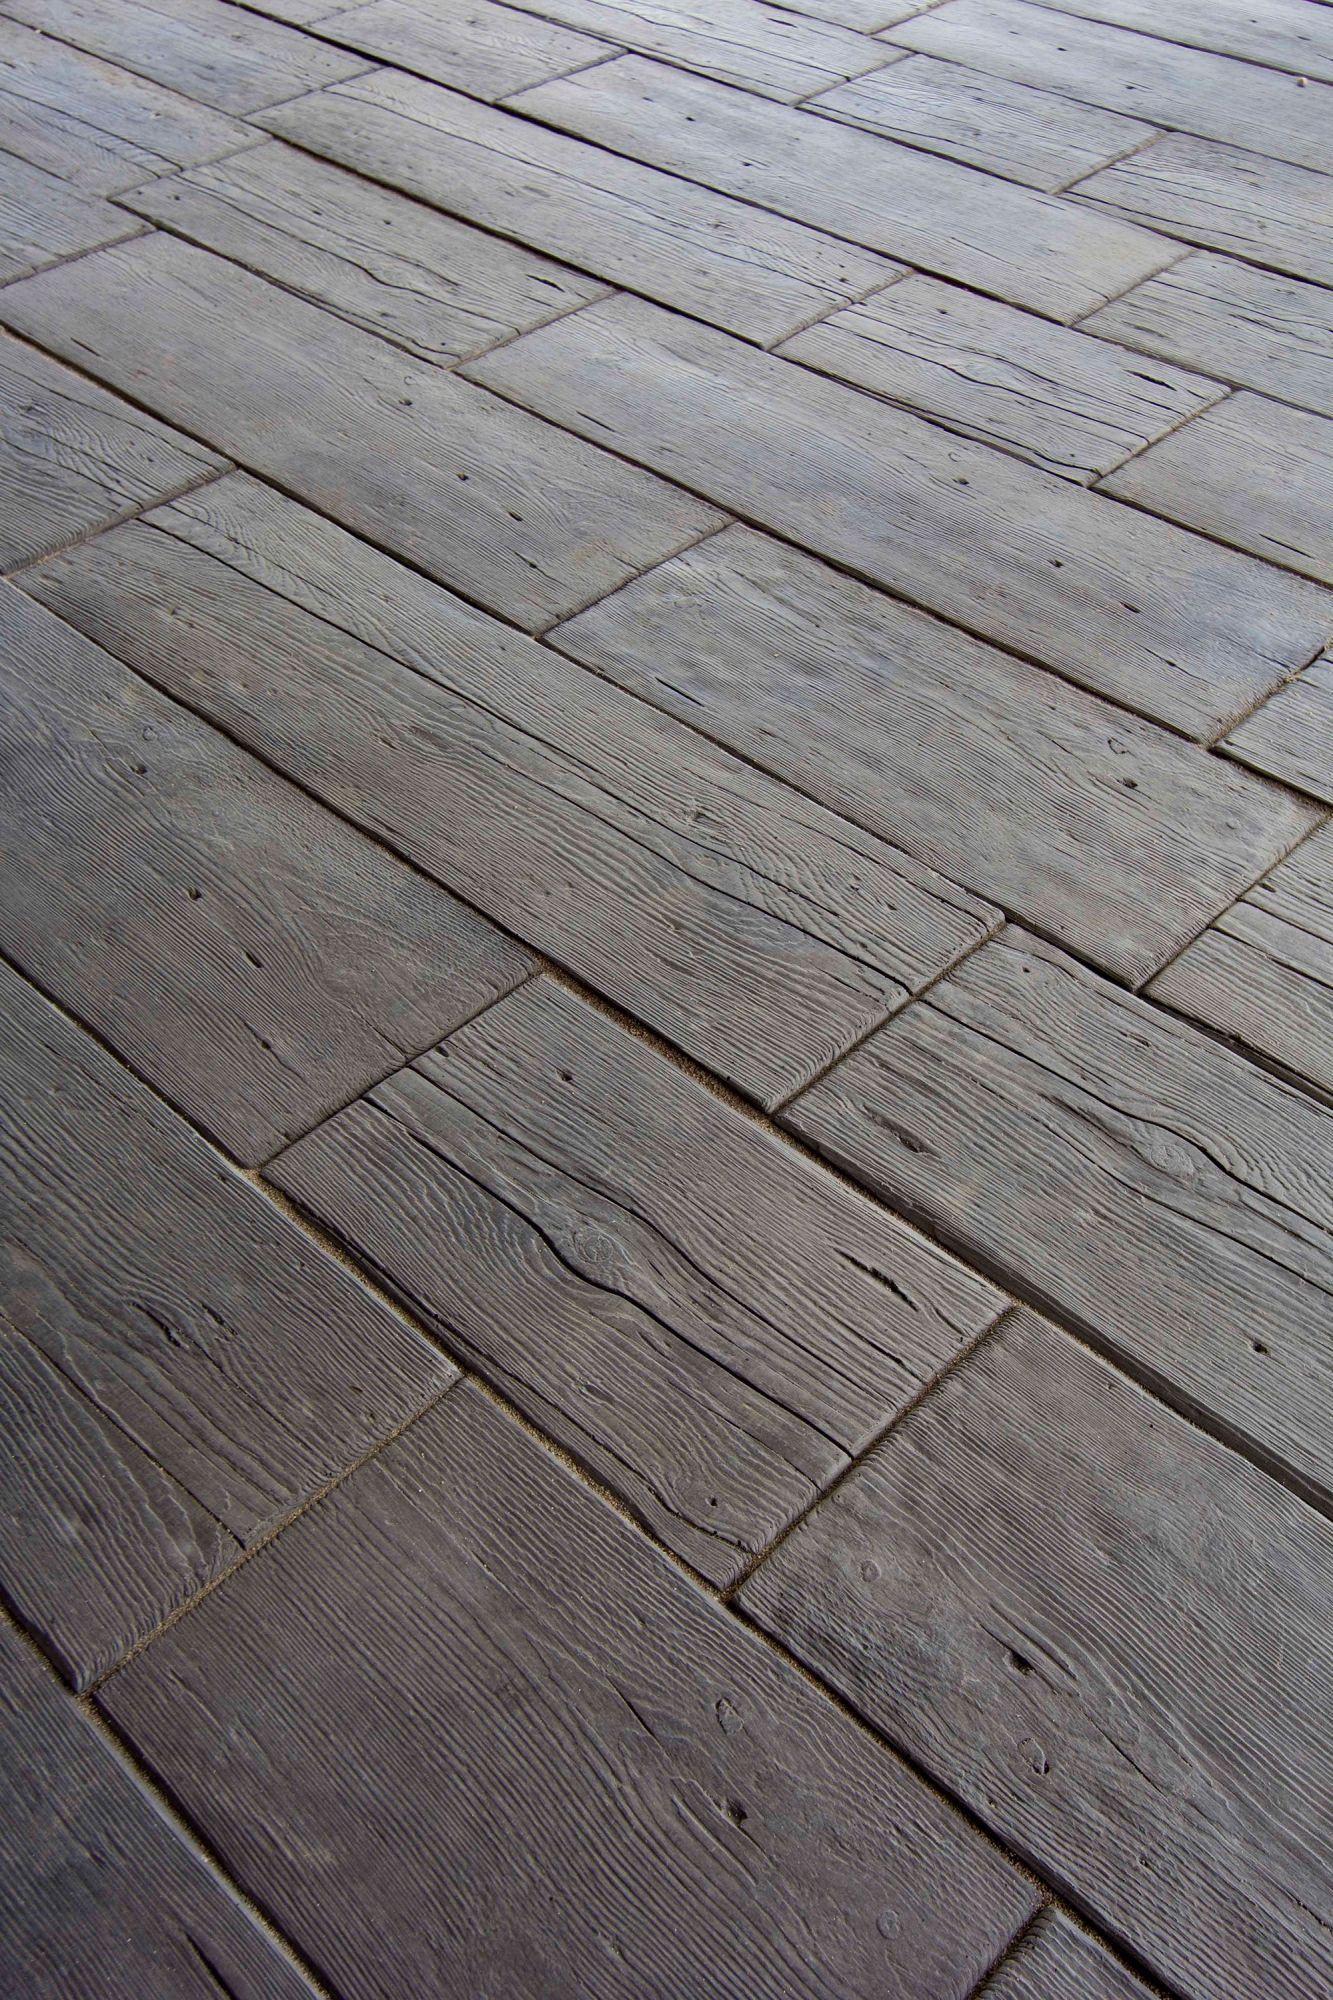 hardwood flooring lehigh valley pa of rustic wood nope 2 thick concrete pavers barn plank landscape inside rustic wood nope 2 thick concrete pavers barn plank landscape tile by silver creek stoneworks rochester mn ideal for outdoor paths decks etc